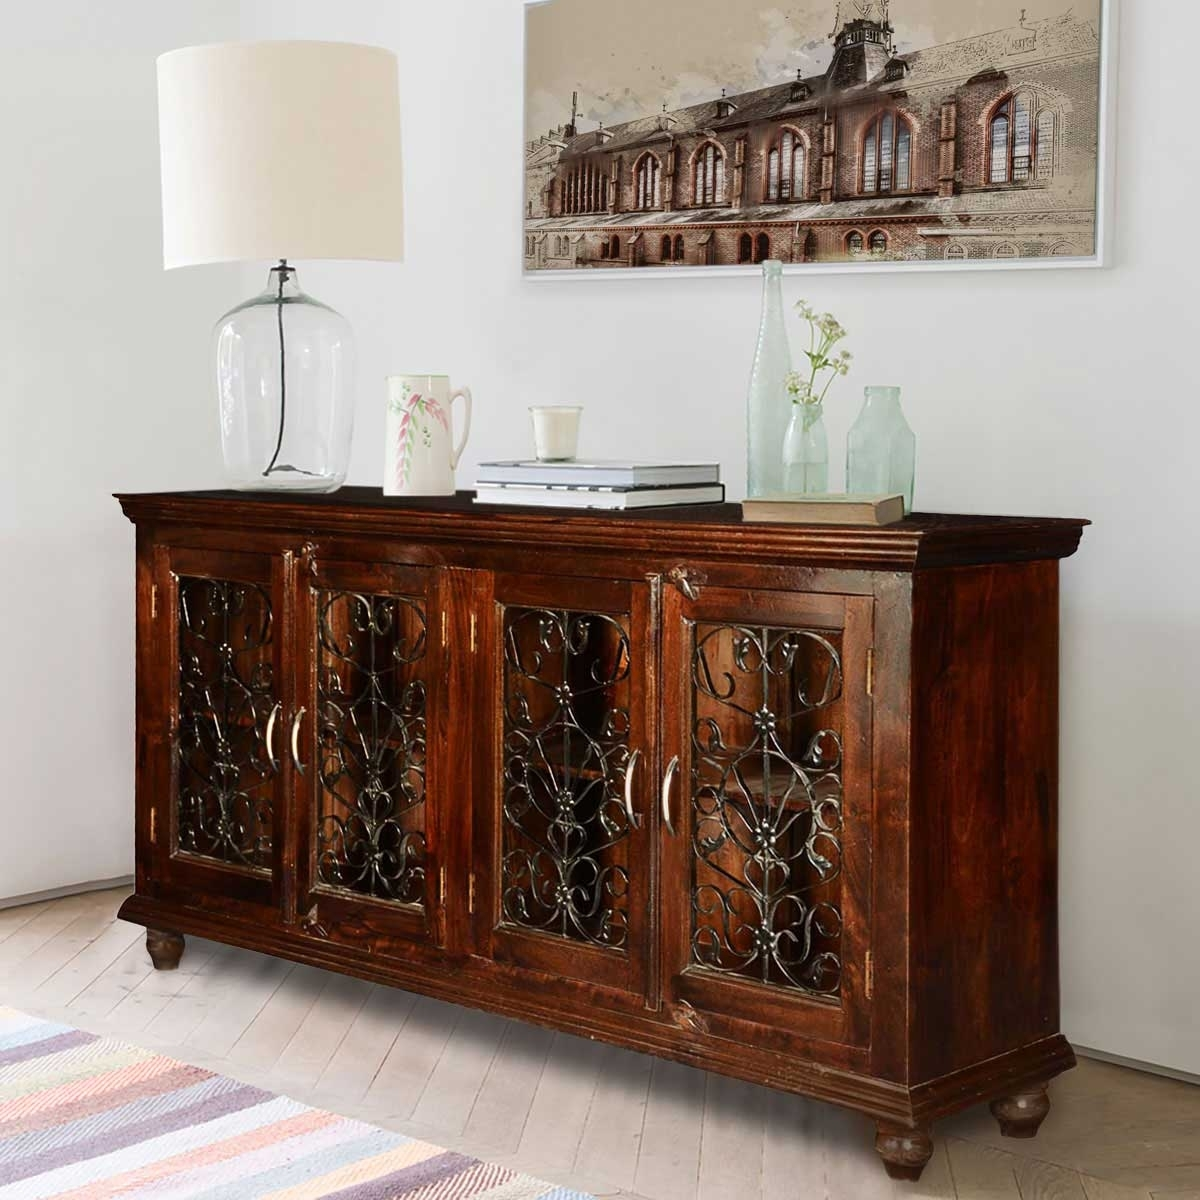 Italian Classic Mango Wood Iron Grille Door Large Buffet Cabinet for Metal Framed Reclaimed Wood Sideboards (Image 15 of 30)